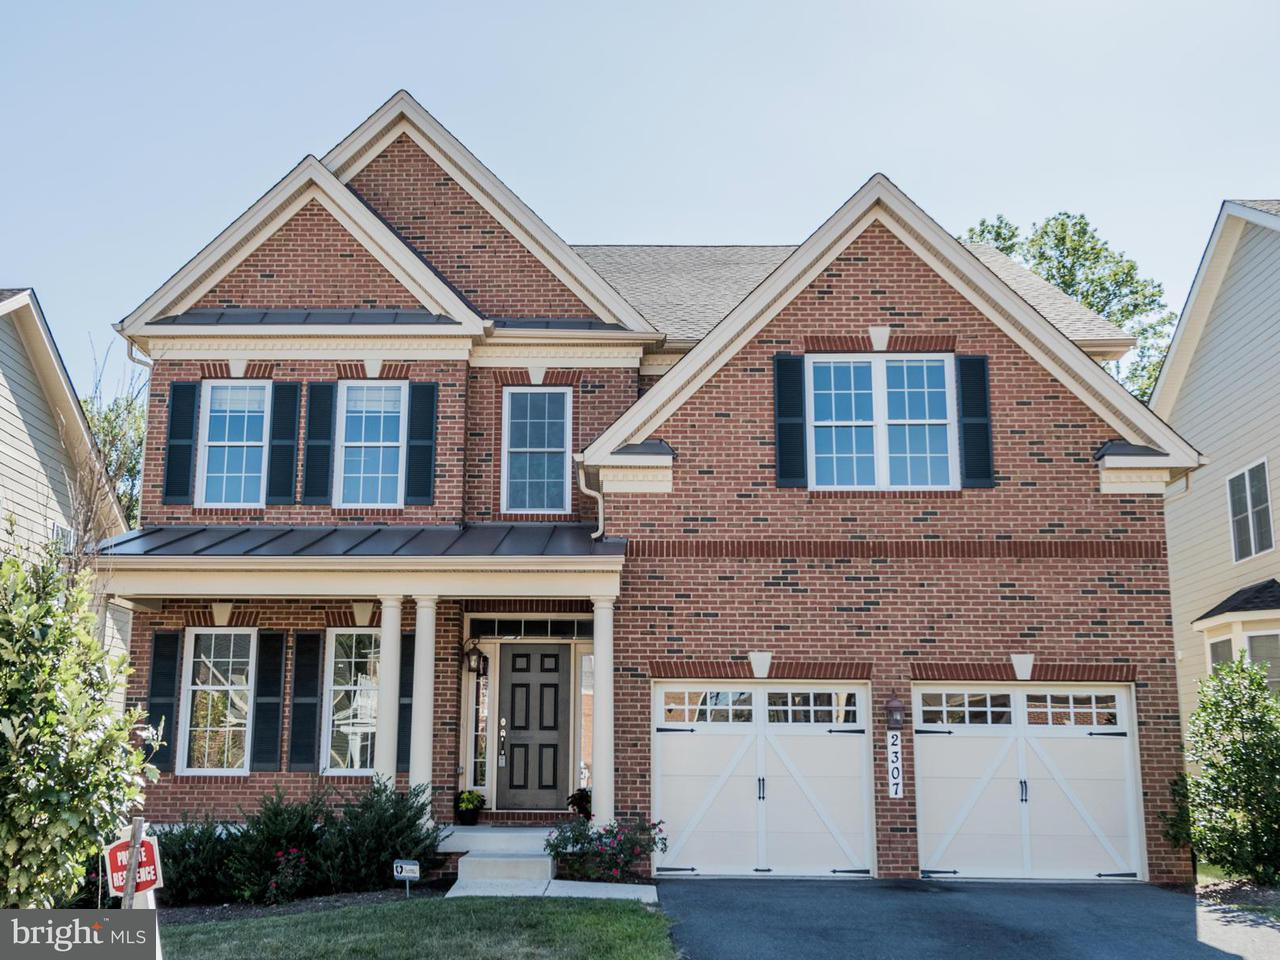 Single Family Home for Sale at 2307 SYCAMORE Place 2307 SYCAMORE Place Hanover, Maryland 21076 United States